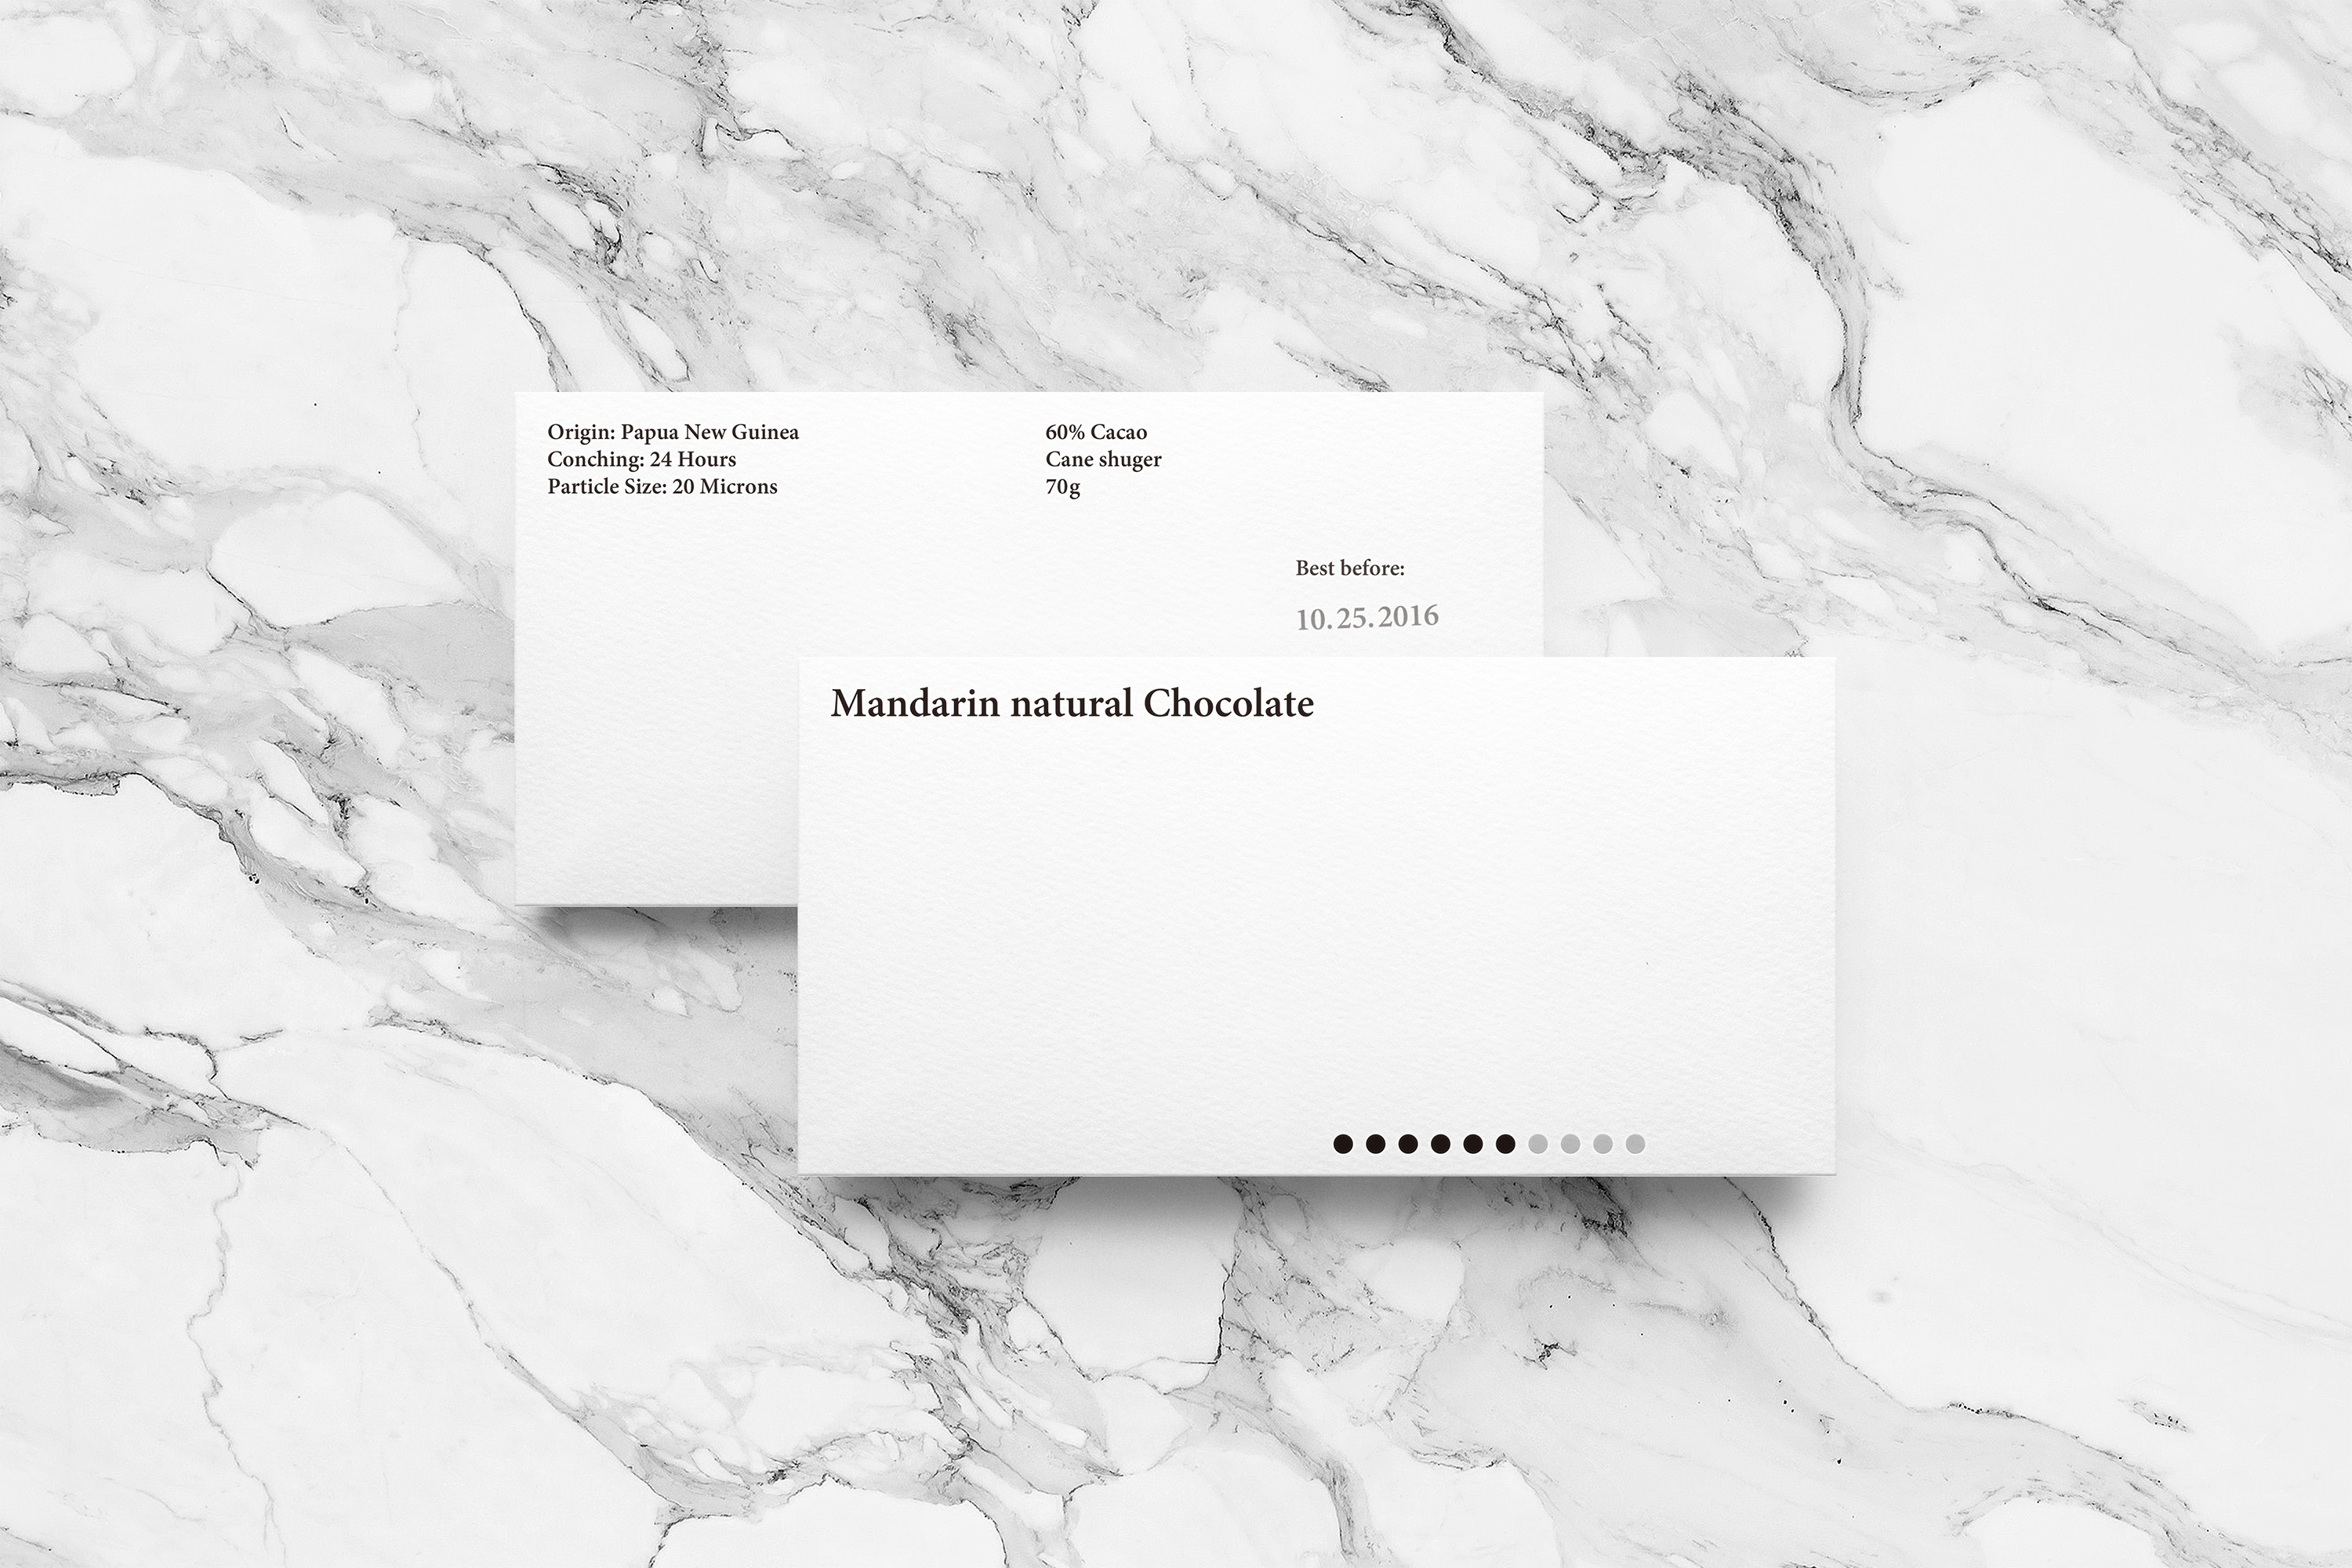 mandarin_natural_chocolate_branding_packaging_design_minimal_simple_yuta_takahashi_03